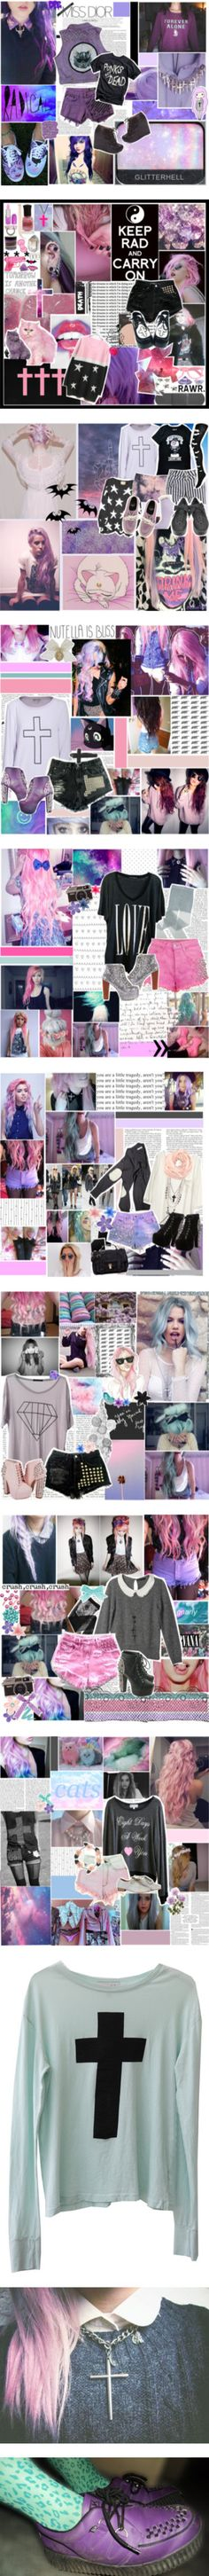 """""""pastel goth"""" by mari-rasella ❤ liked on Polyvore"""